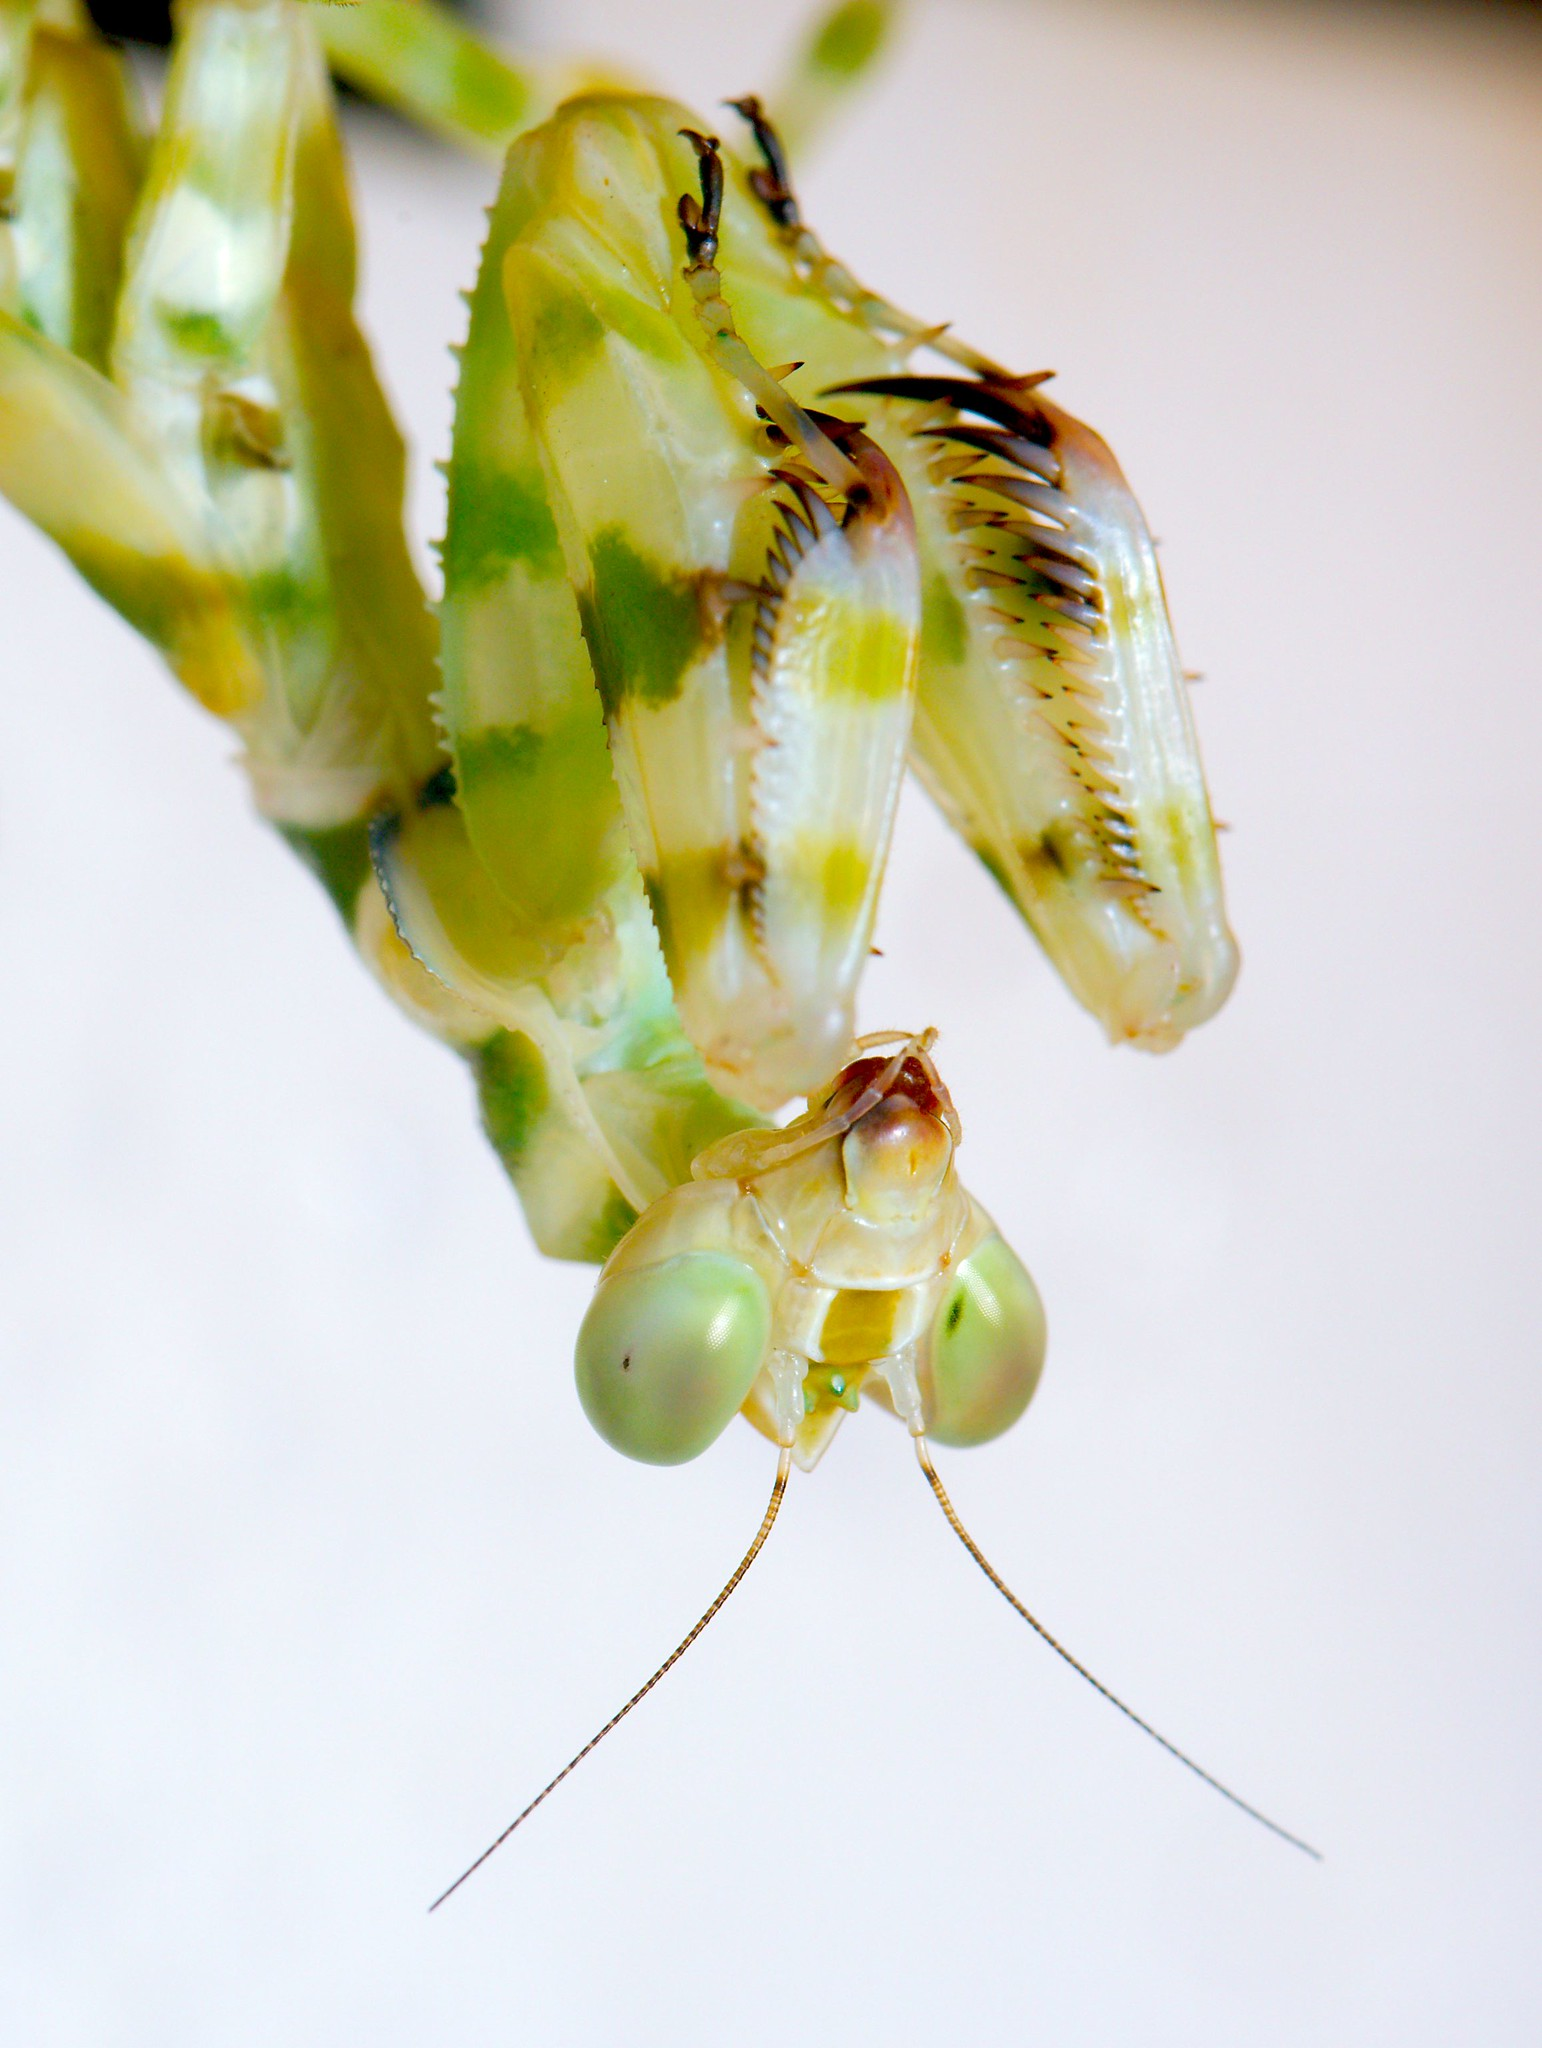 Banded Flower Mantis